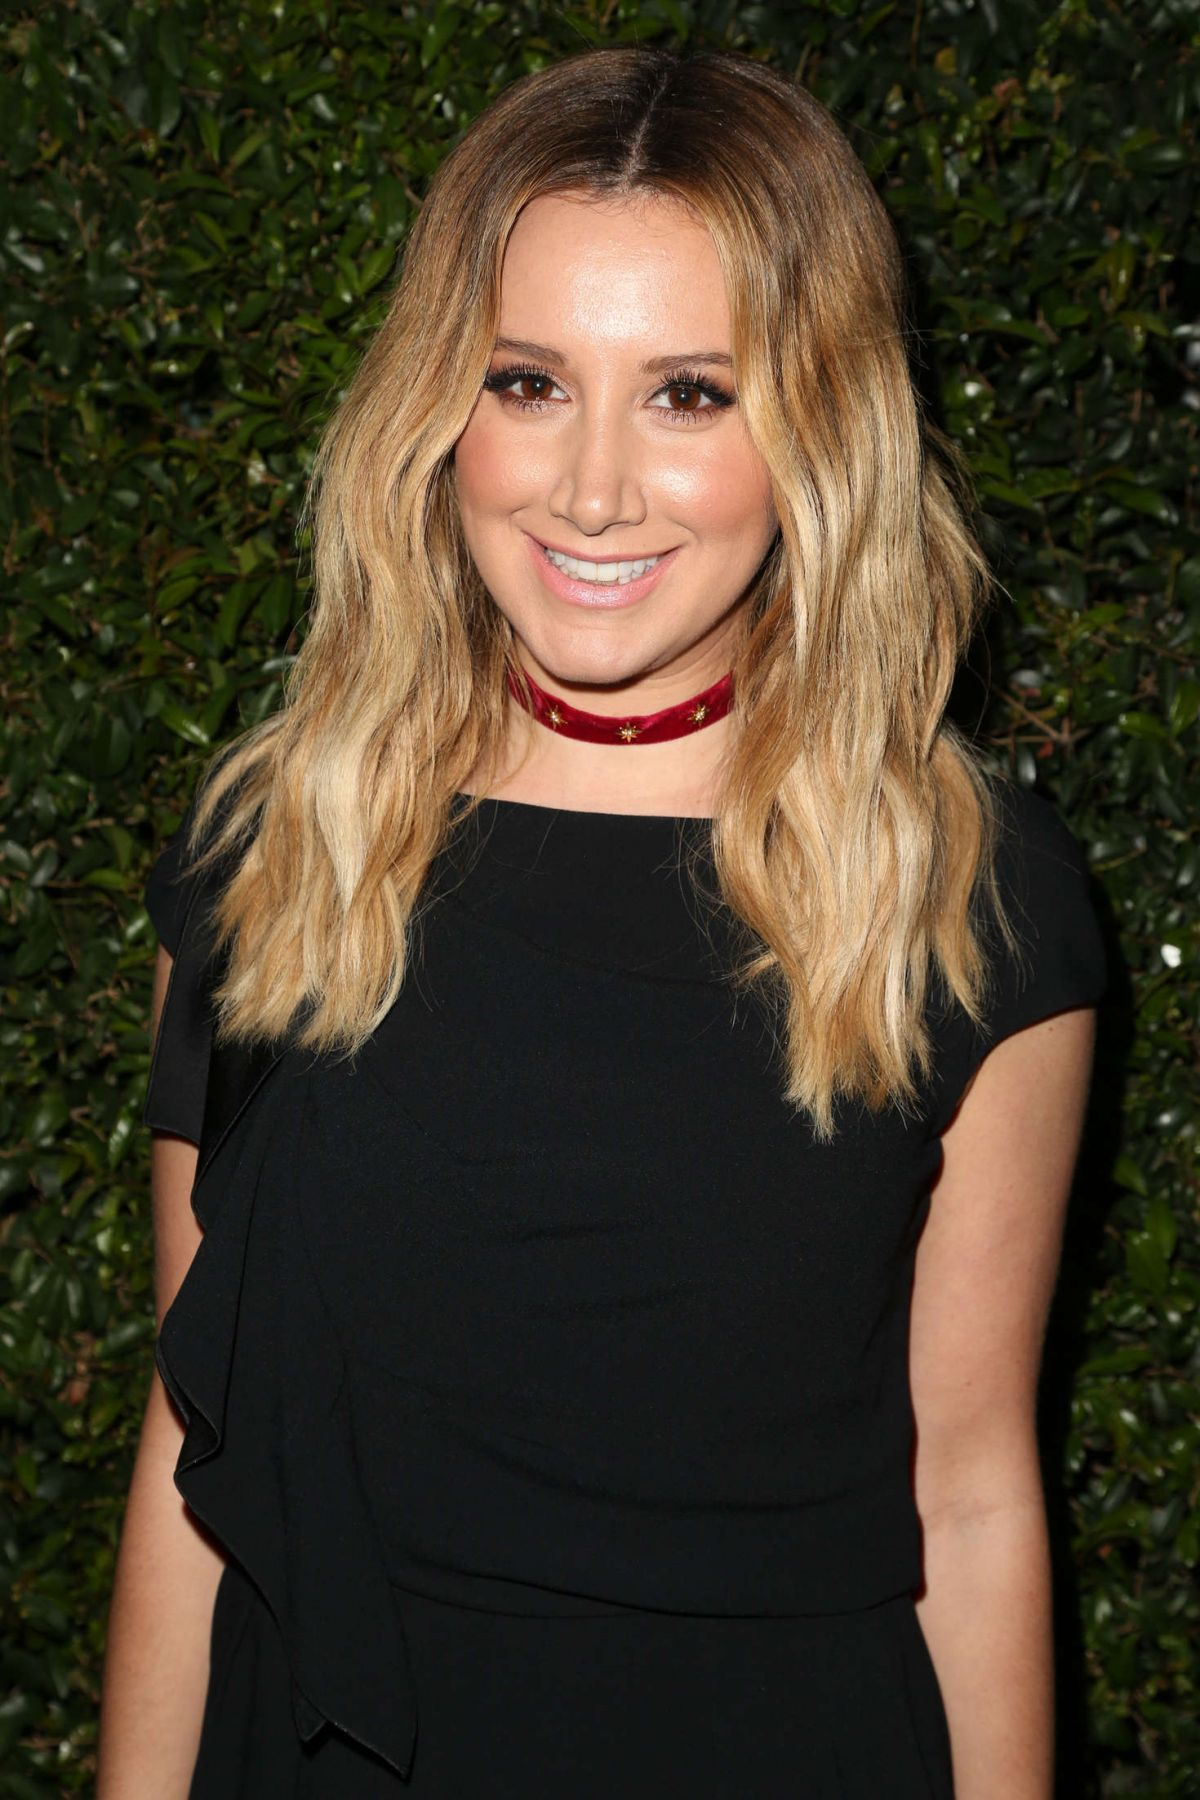 ASHLEY TISDALE at 2016 Women in Film Max Mara Face of Future in Los Angeles 06/14/2016